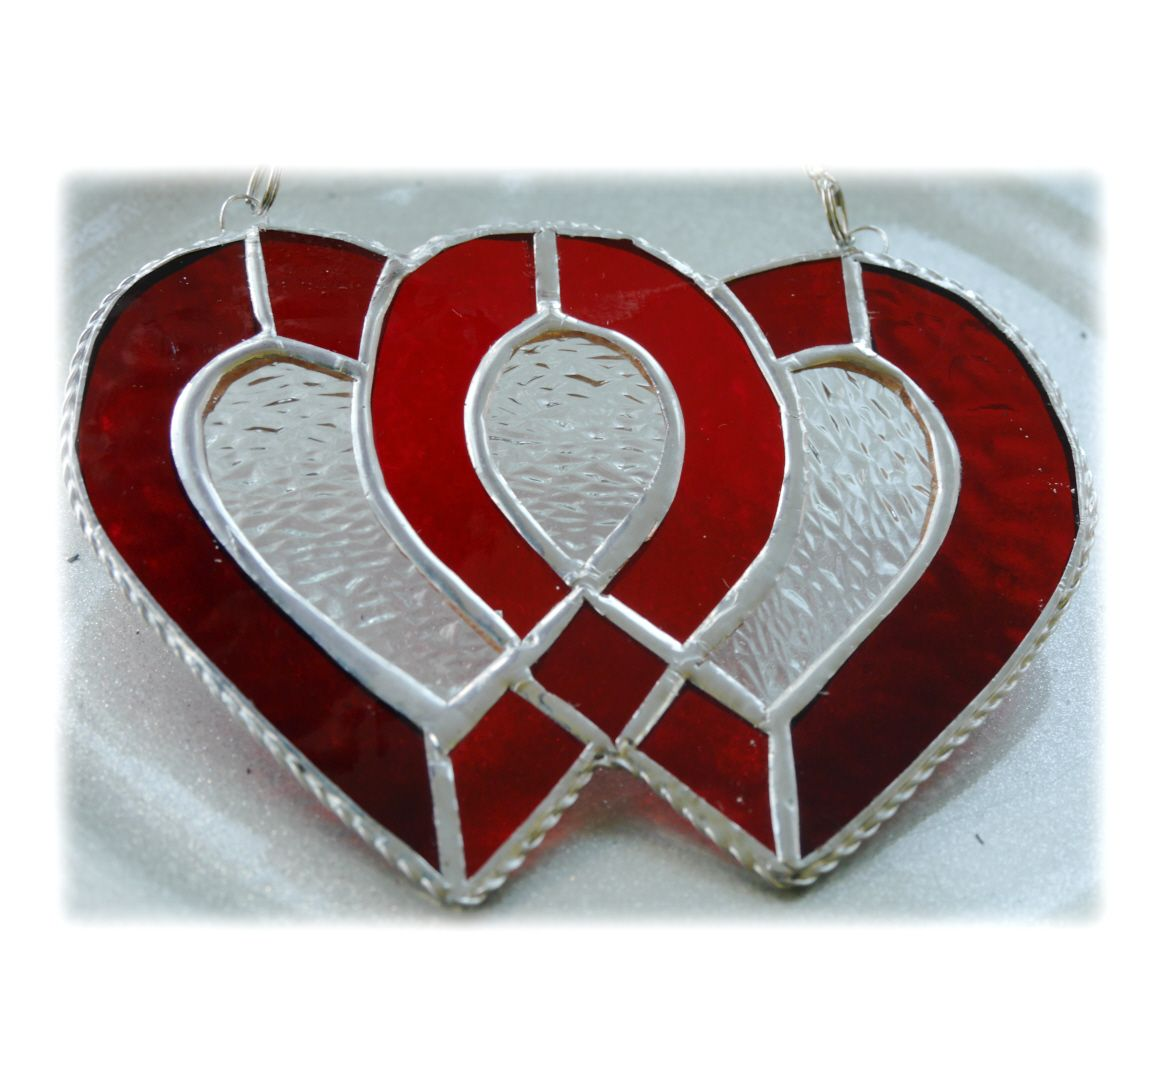 RED Entwined Heart 012 Red #1809 FREE 22.50